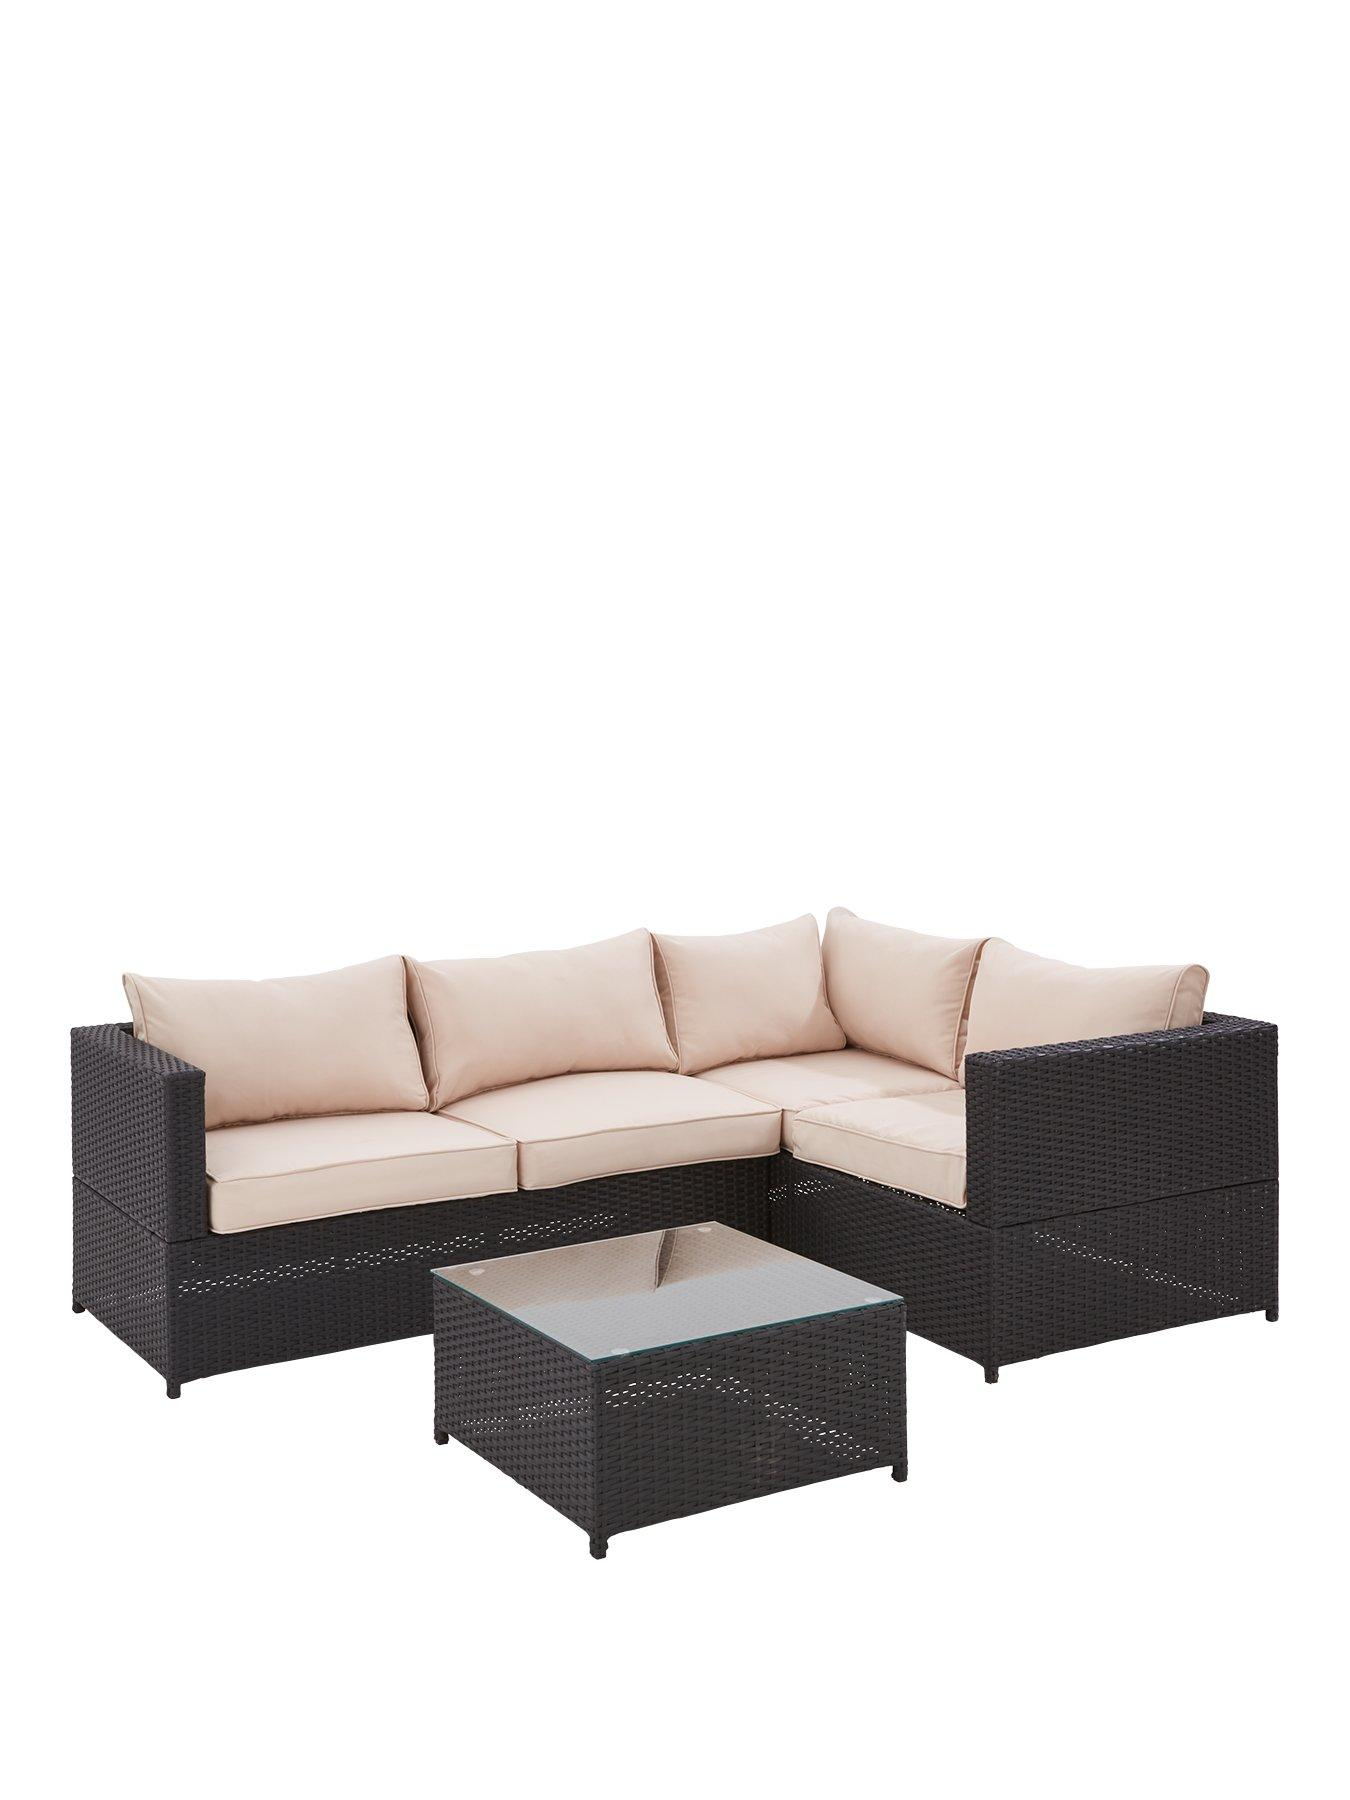 palermo rattan effect corner sofa set cover large leather sofas uk garden furniture outdoor www very co vancouver 3 piece